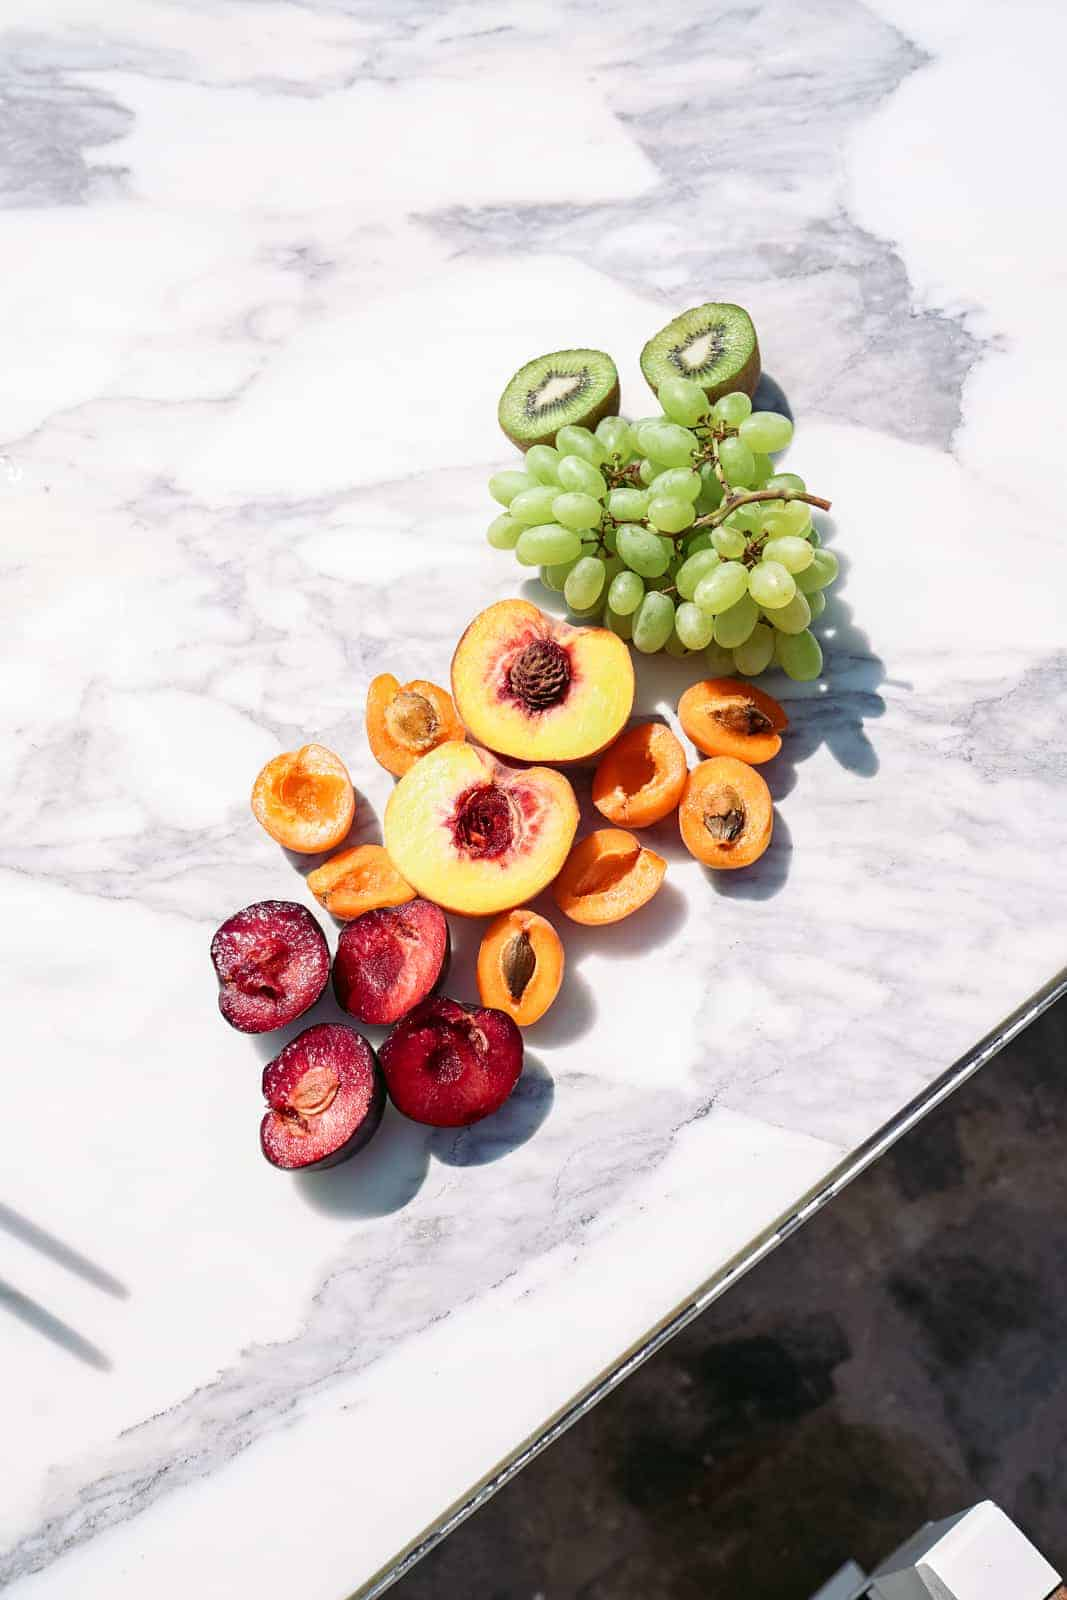 Healthy fruit on a white marble table.